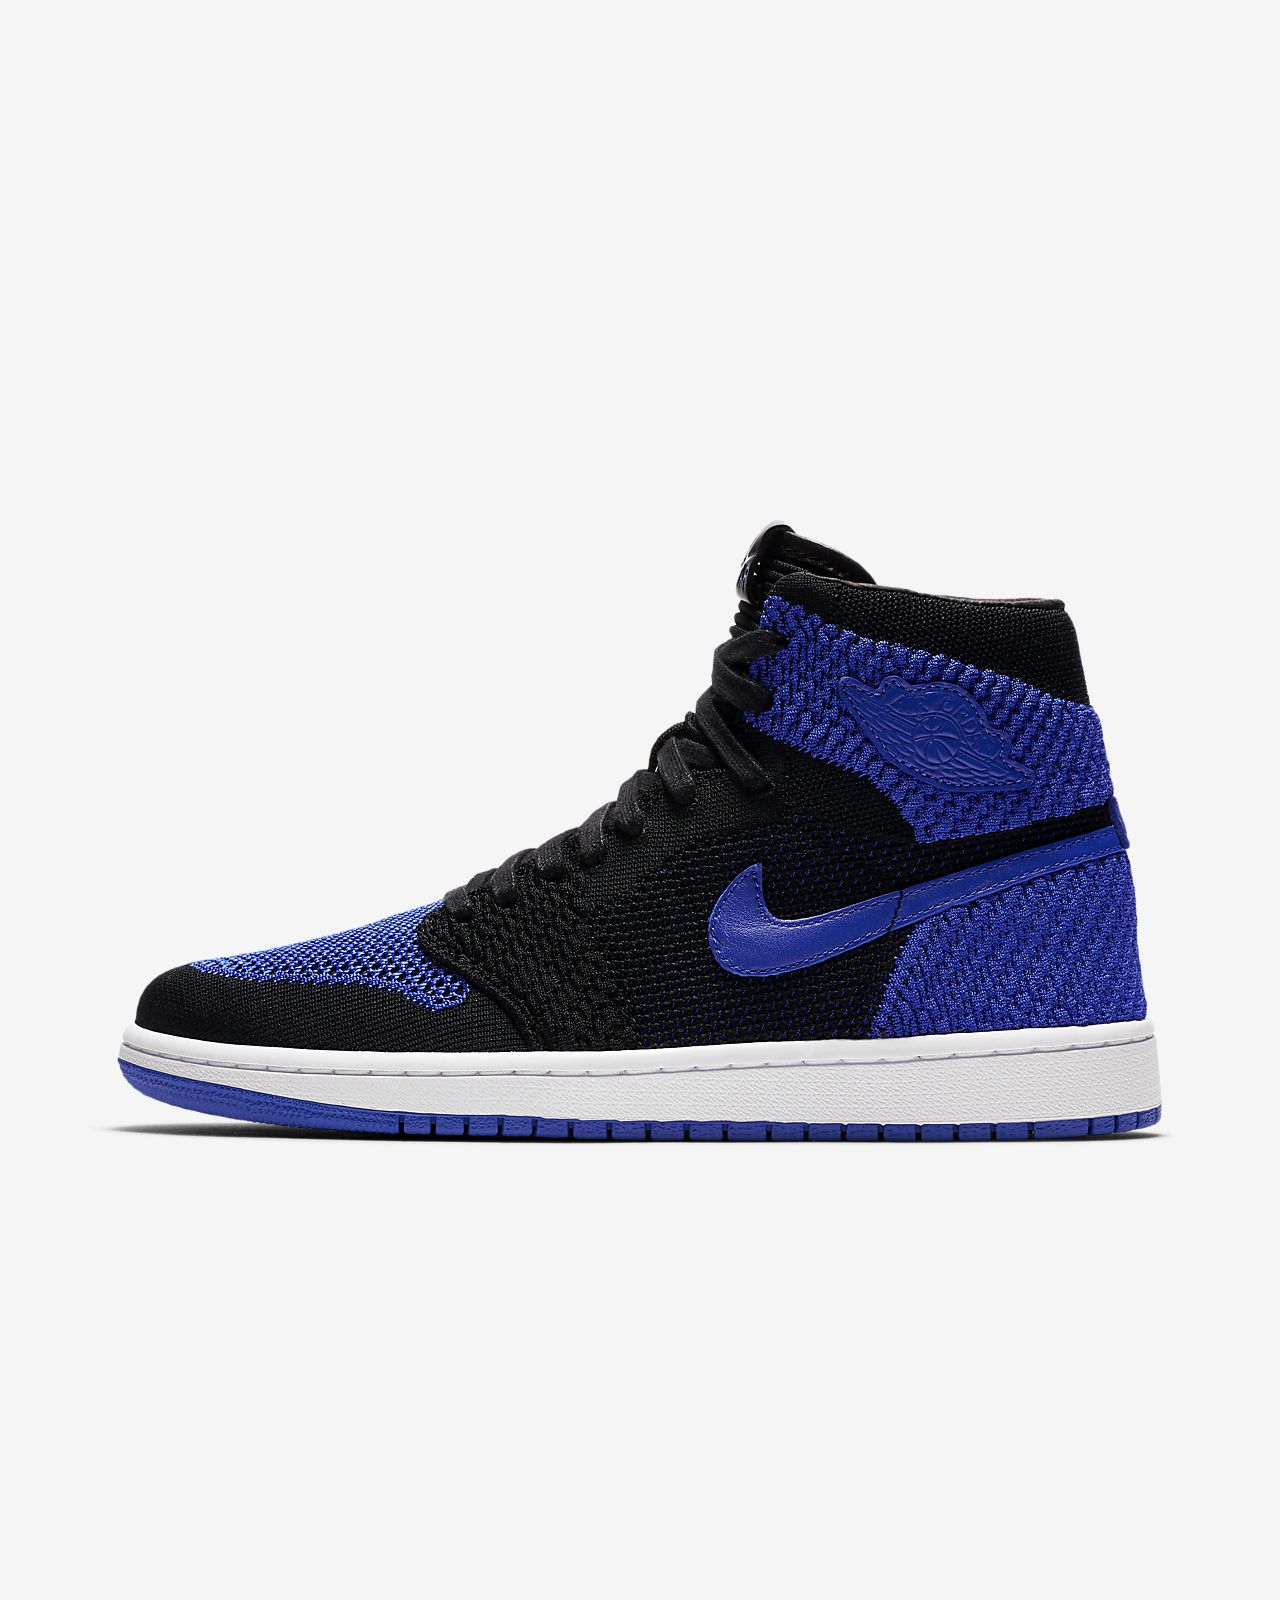 the latest 6aec0 84cd4 Men s Shoe. Air Jordan 1 Retro High Flyknit